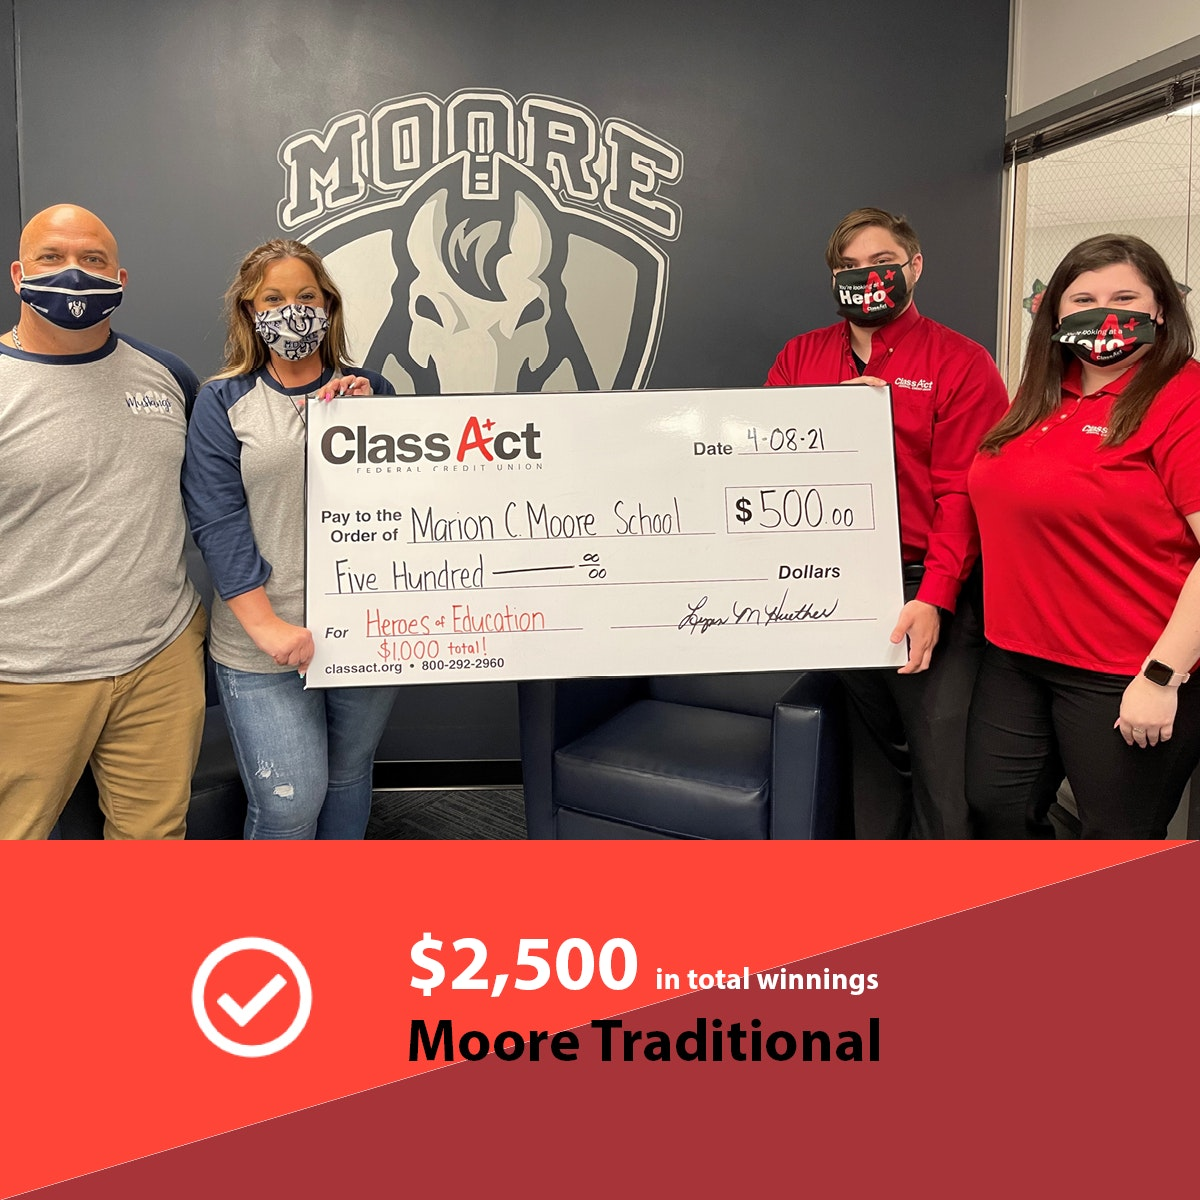 2500 Check Image Moore Traditional